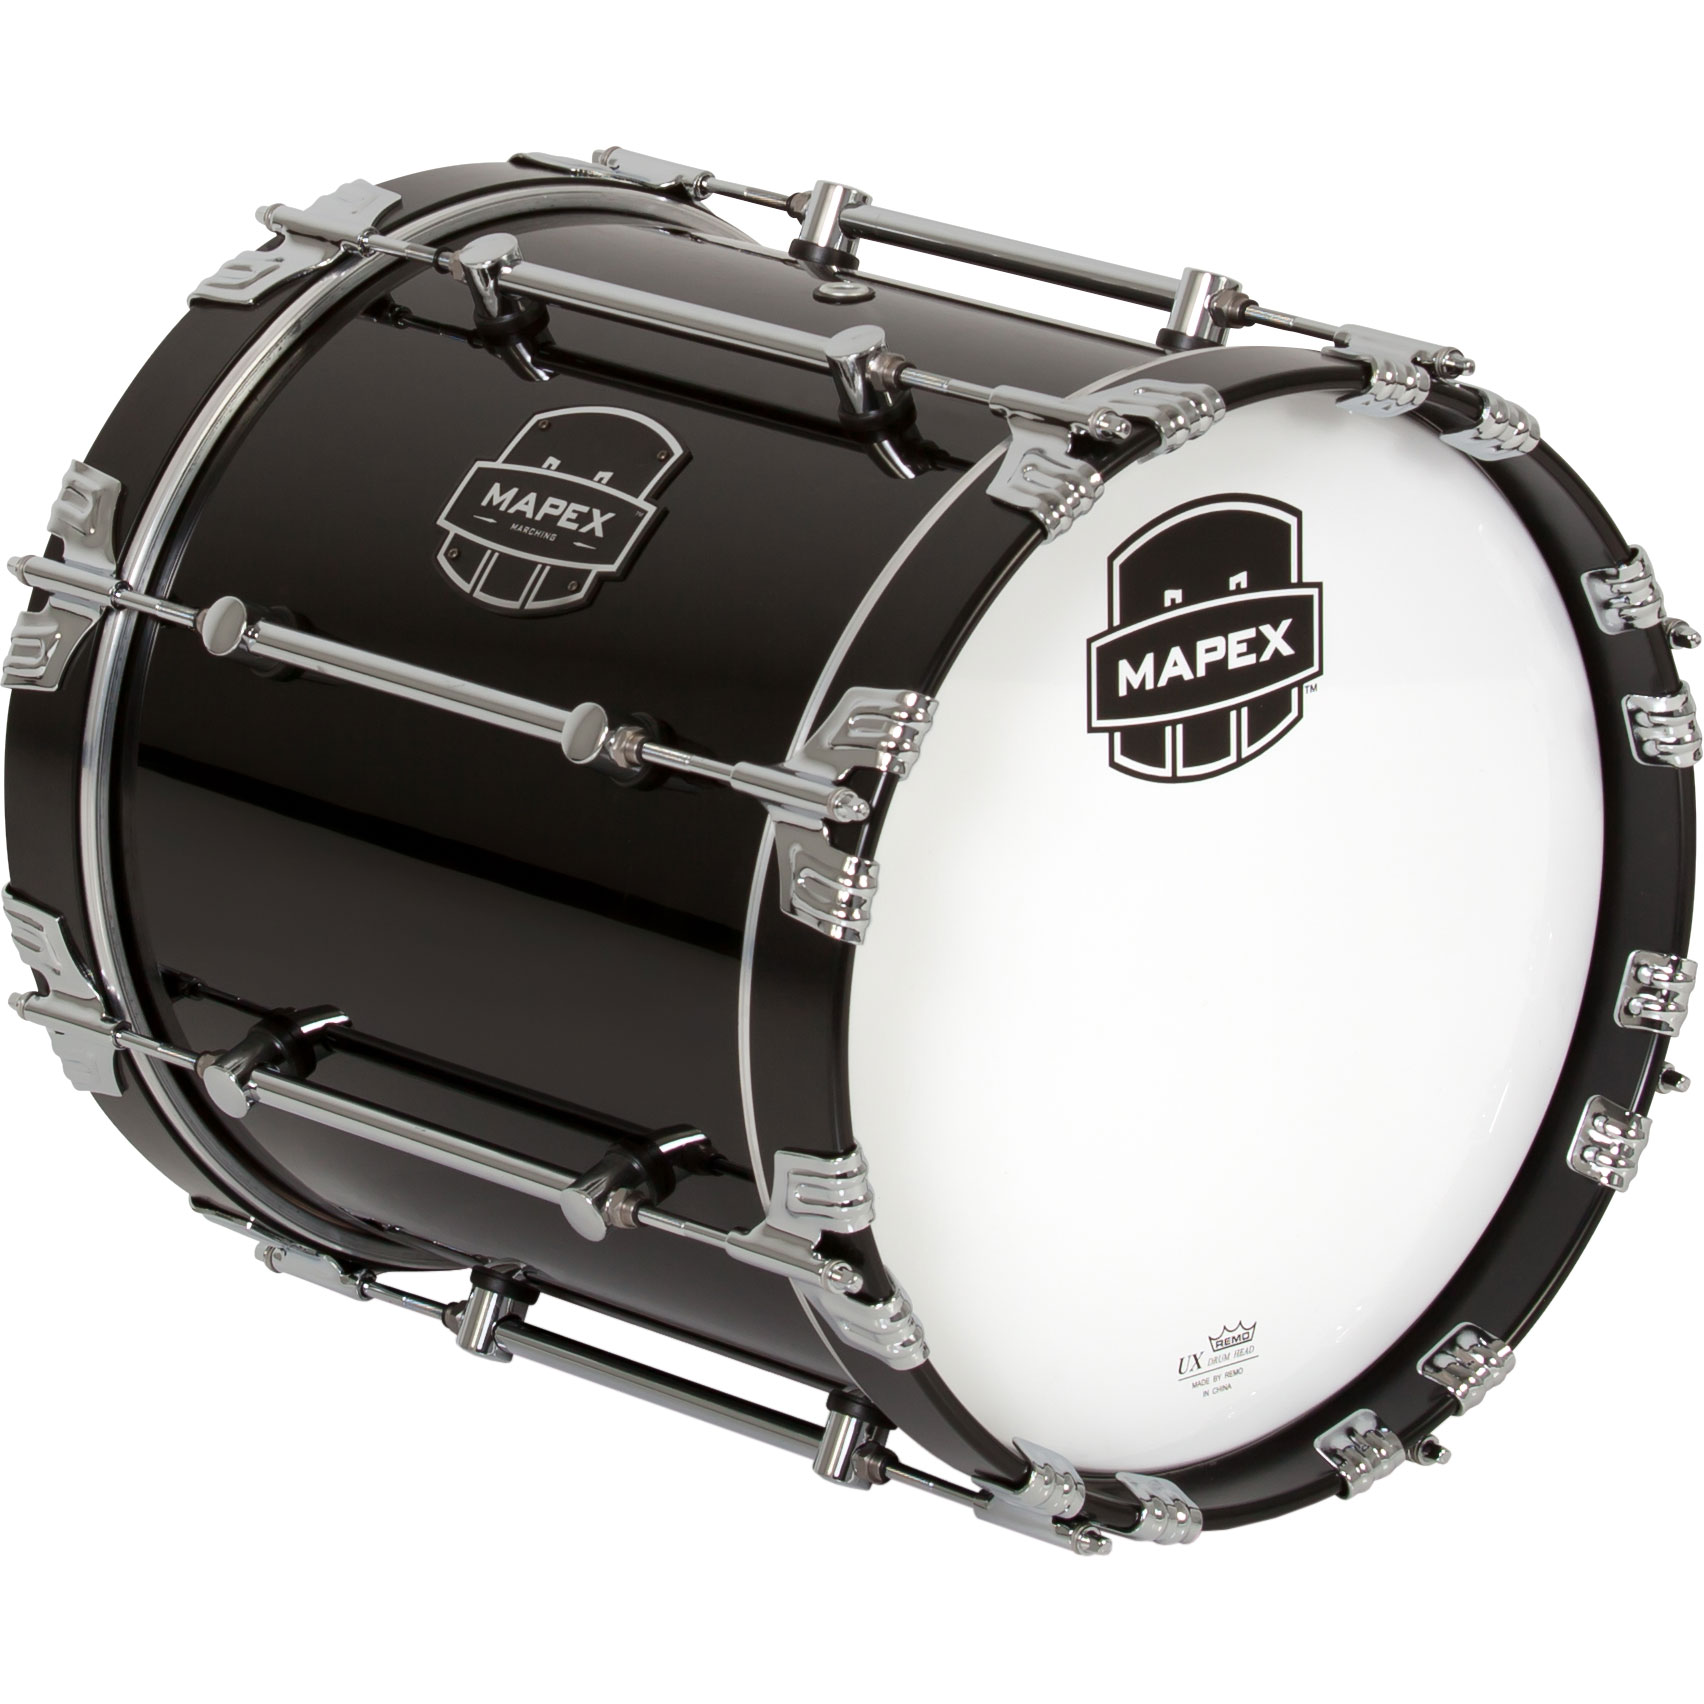 "Mapex 16"" x 14"" Quantum Mark II Marching Bass Drum in Gloss Black"